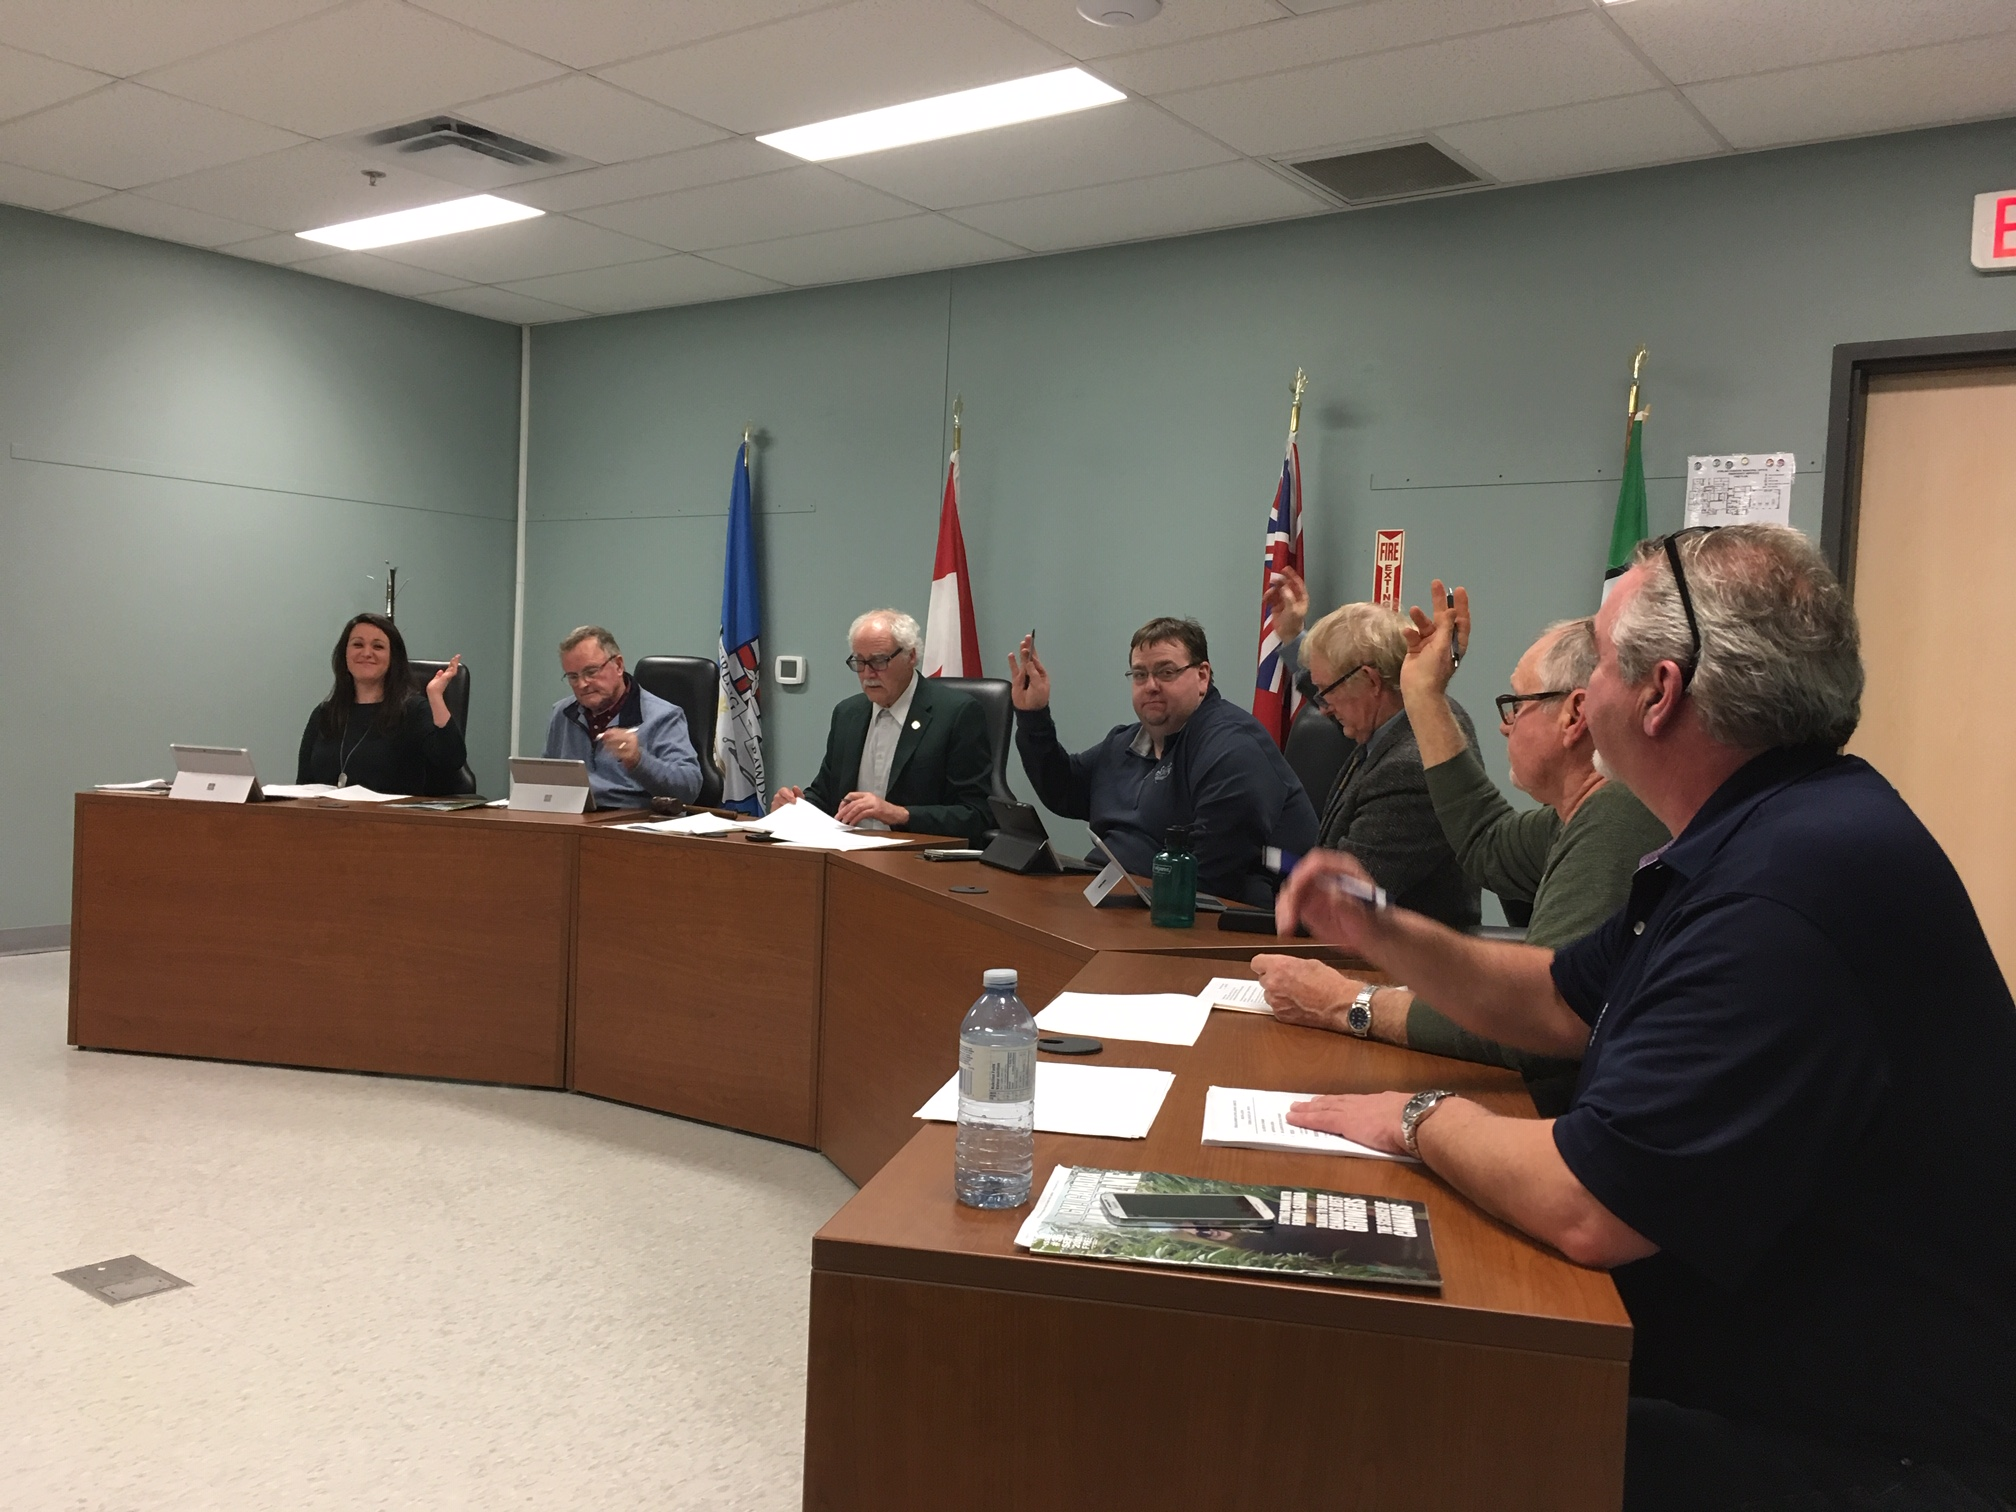 Stirling-Rawdon looking to opt in on retail pot